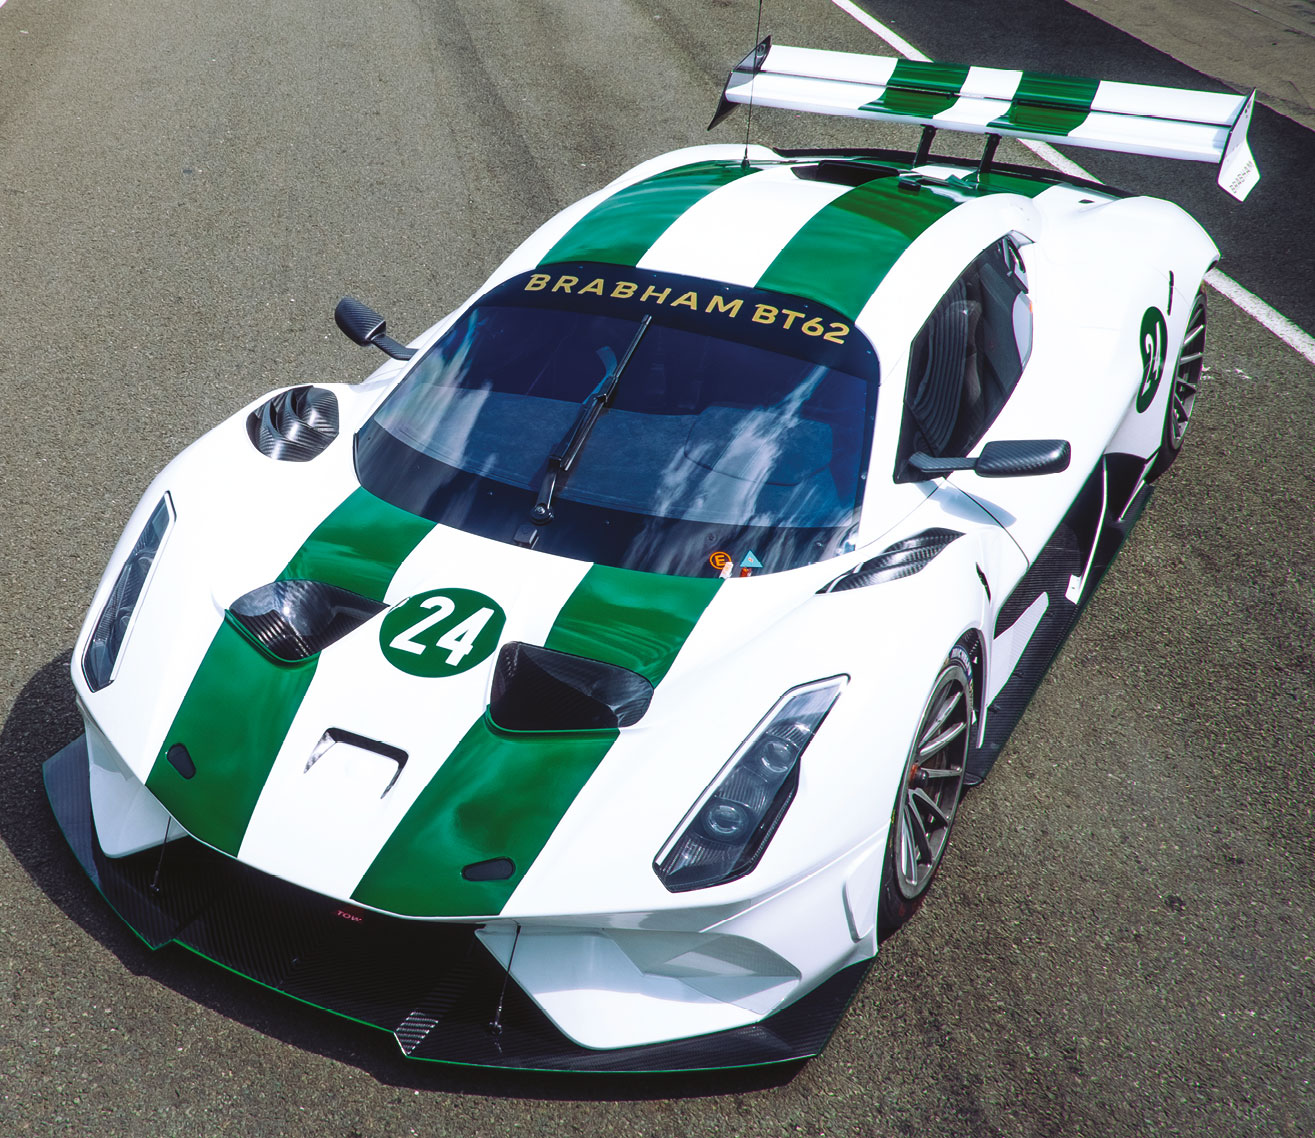 The BT62 is the first Brabham car since the ill-fated BT60B Formula 1 machine of 1992. The team wound up after that highly unsuccessful season